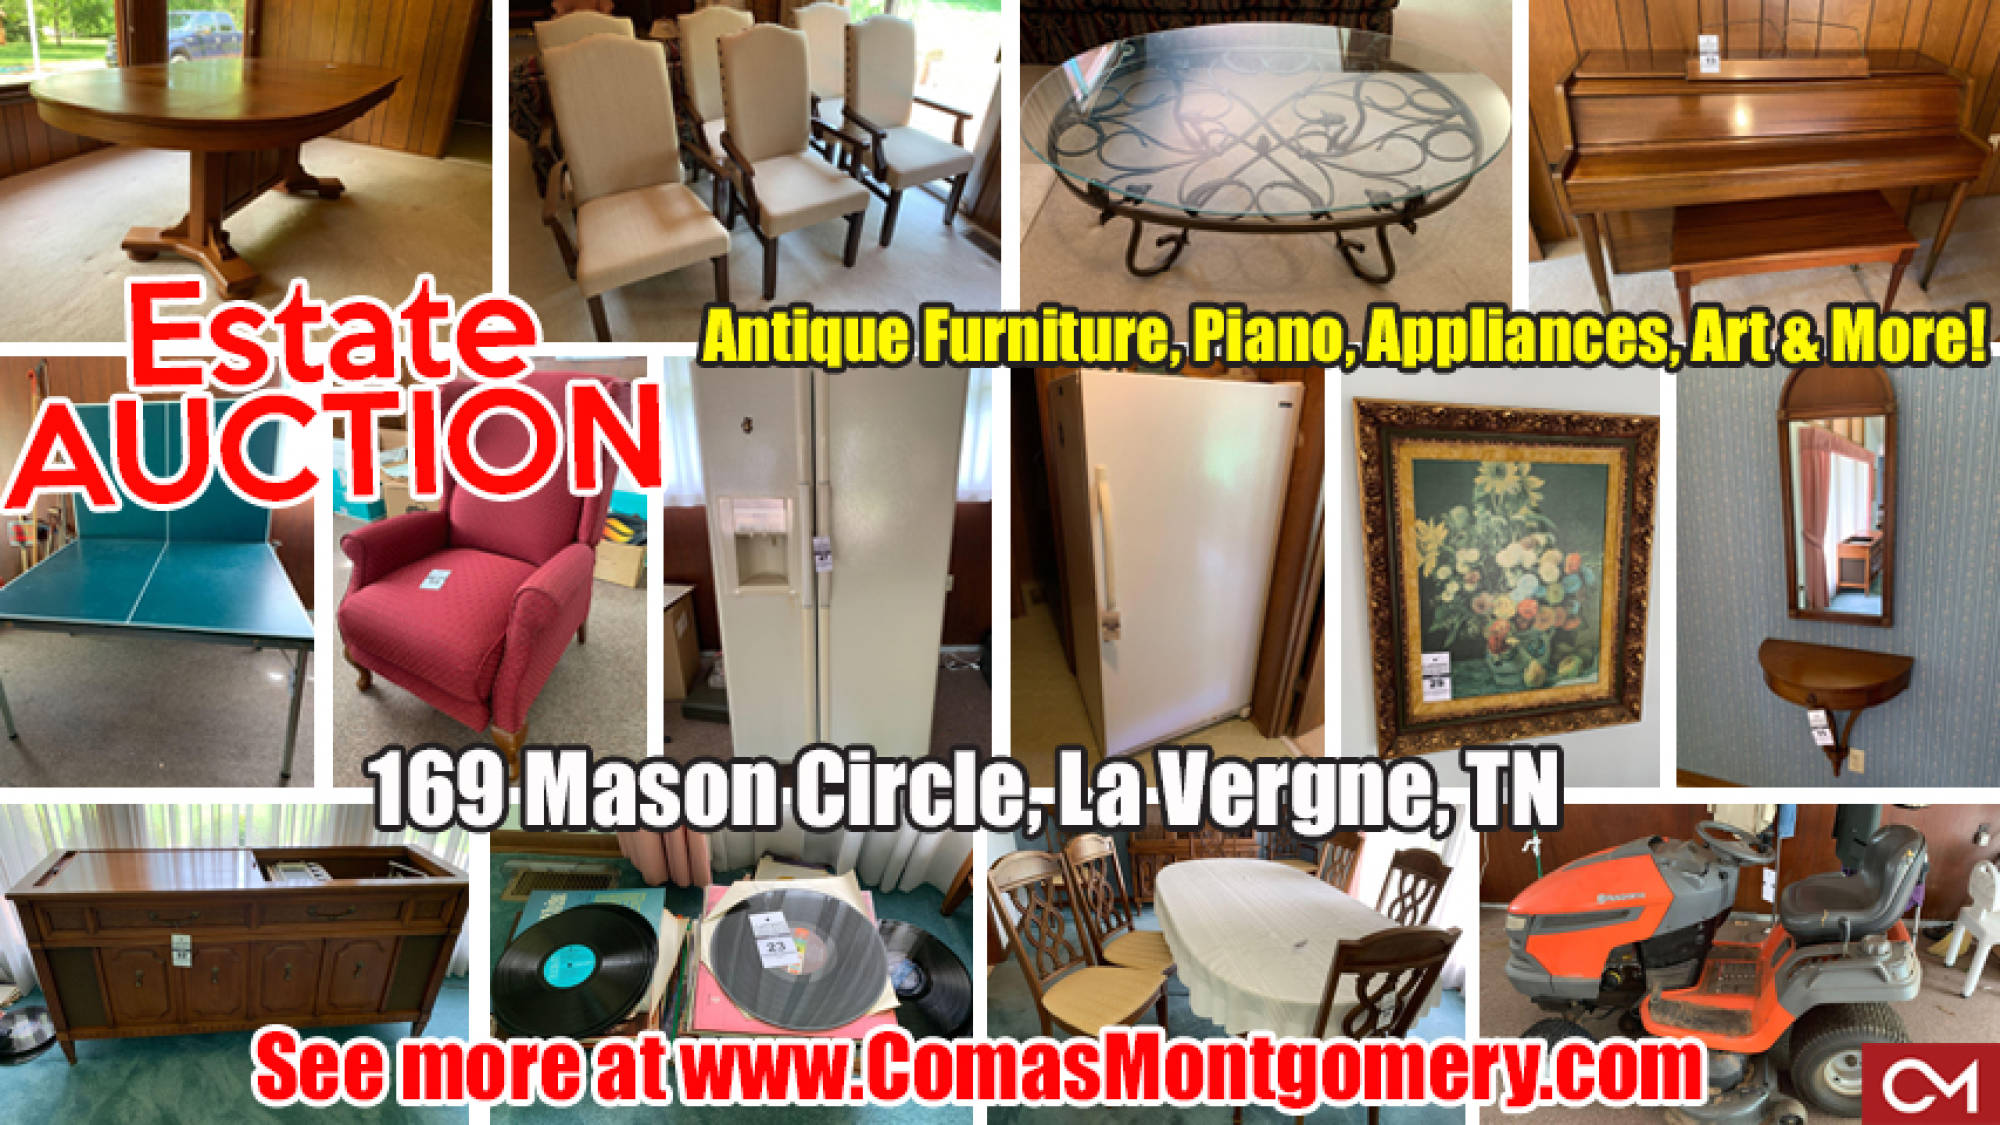 Estate, Sale, Auction, La Vergne, Antiques, Furniture, Appliances, Piano, Records, Stereo, Lamps, Art, For Sale, Comas, Montgomery, Tennessee